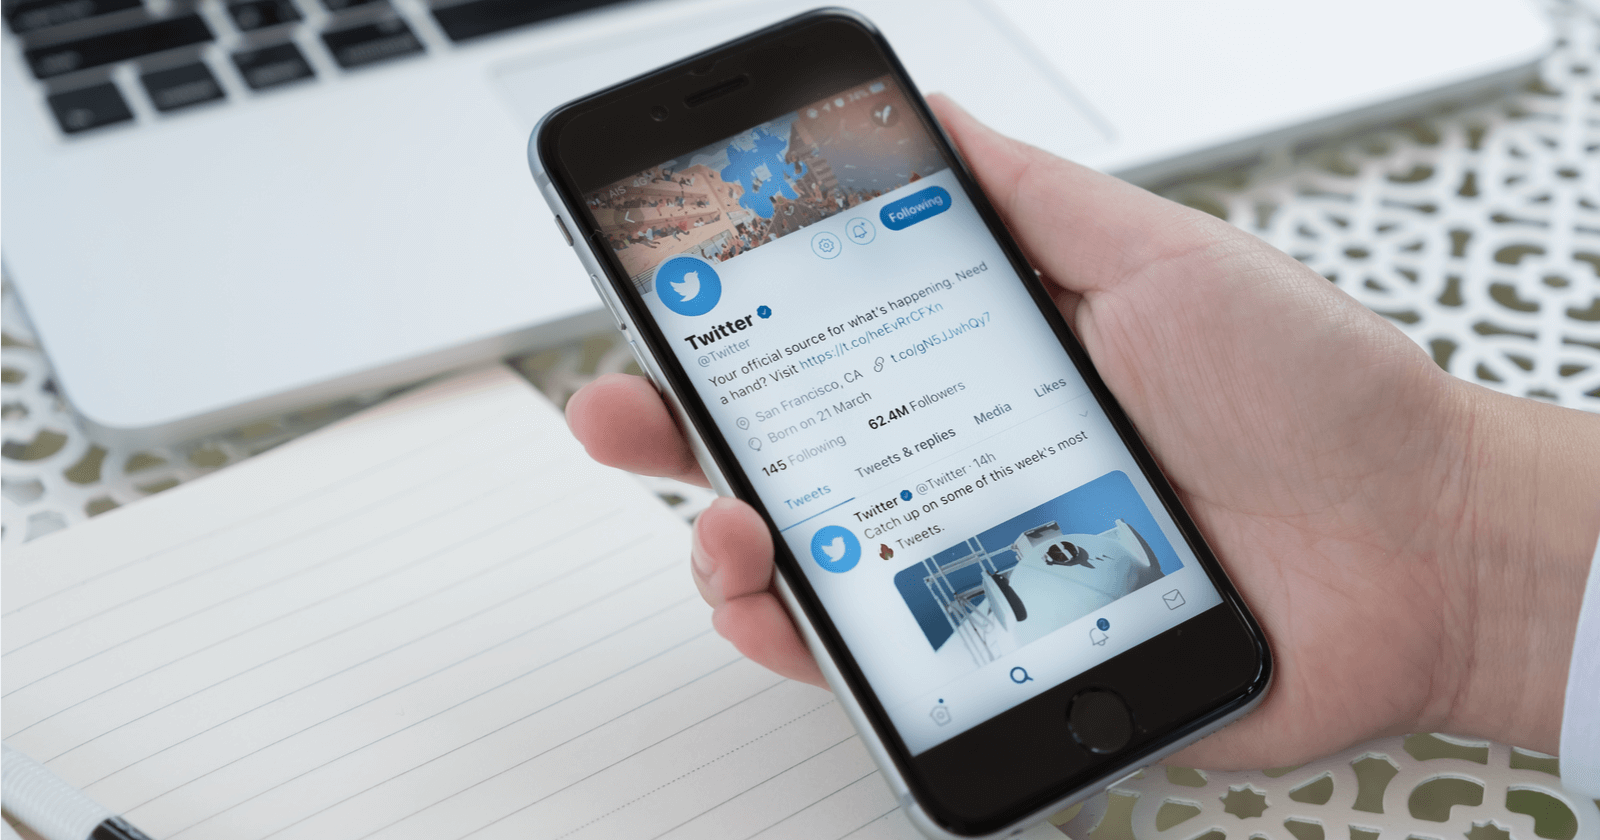 Brands on Twitter can now hide replies to tweets - Marketing Land